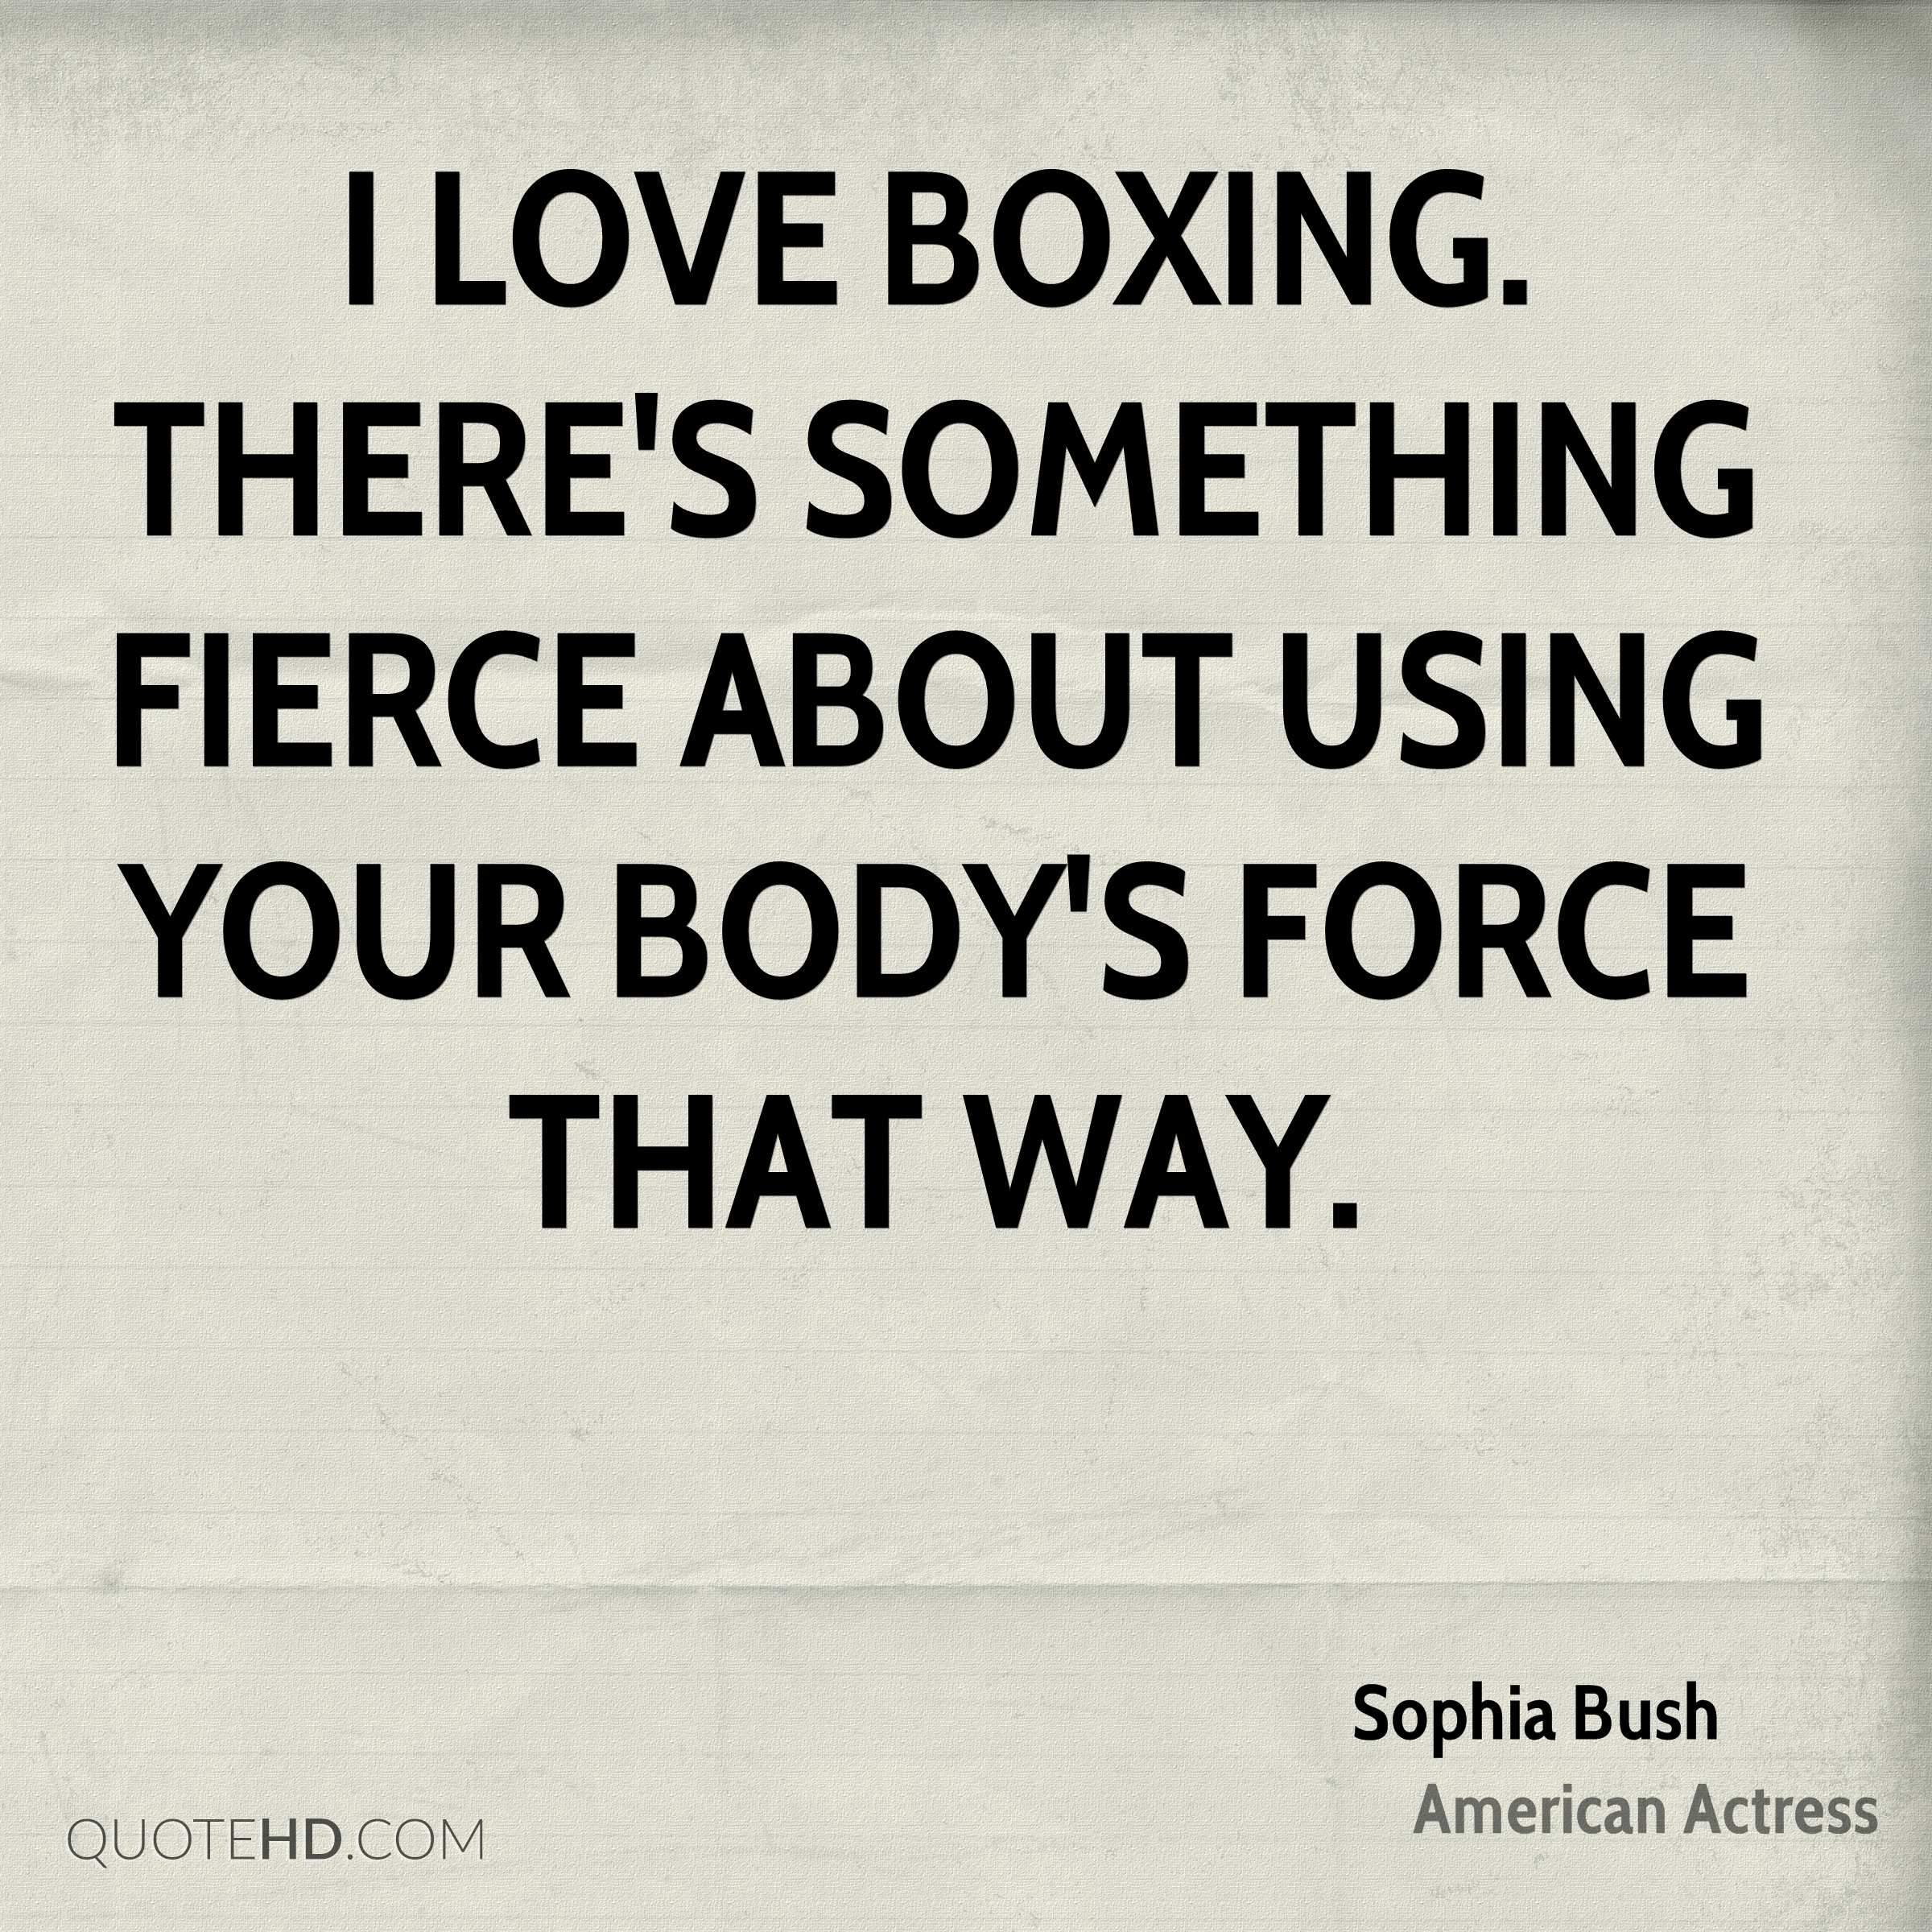 I love boxing. There's something fierce about using your body's force that way.